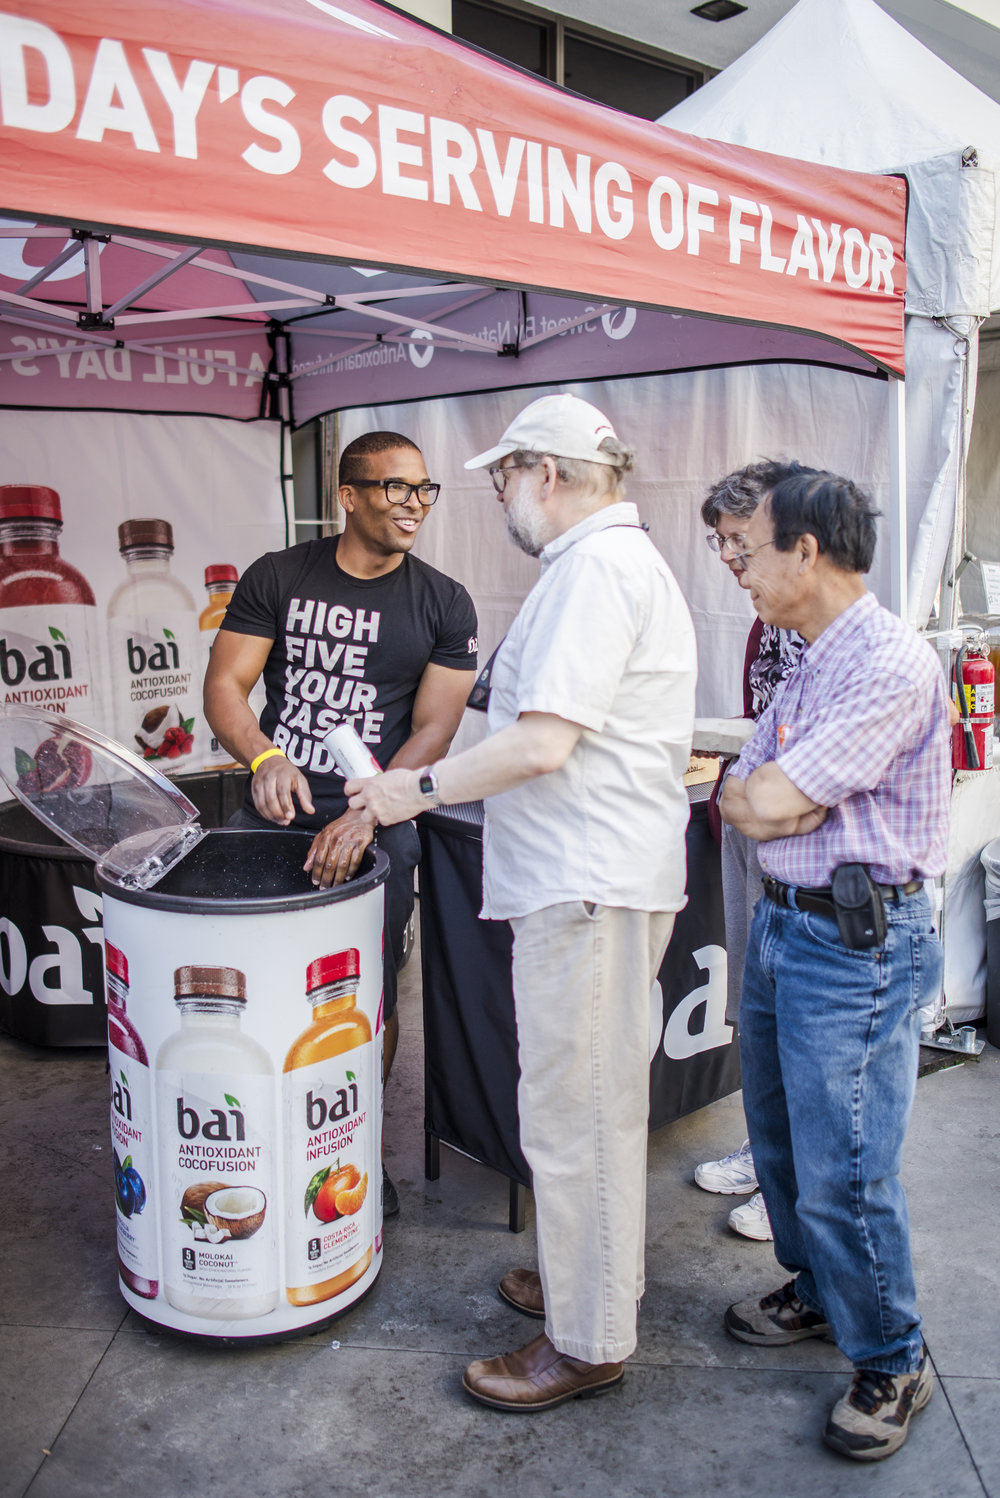 Bai was also present promoting their flavored fizzy water product.